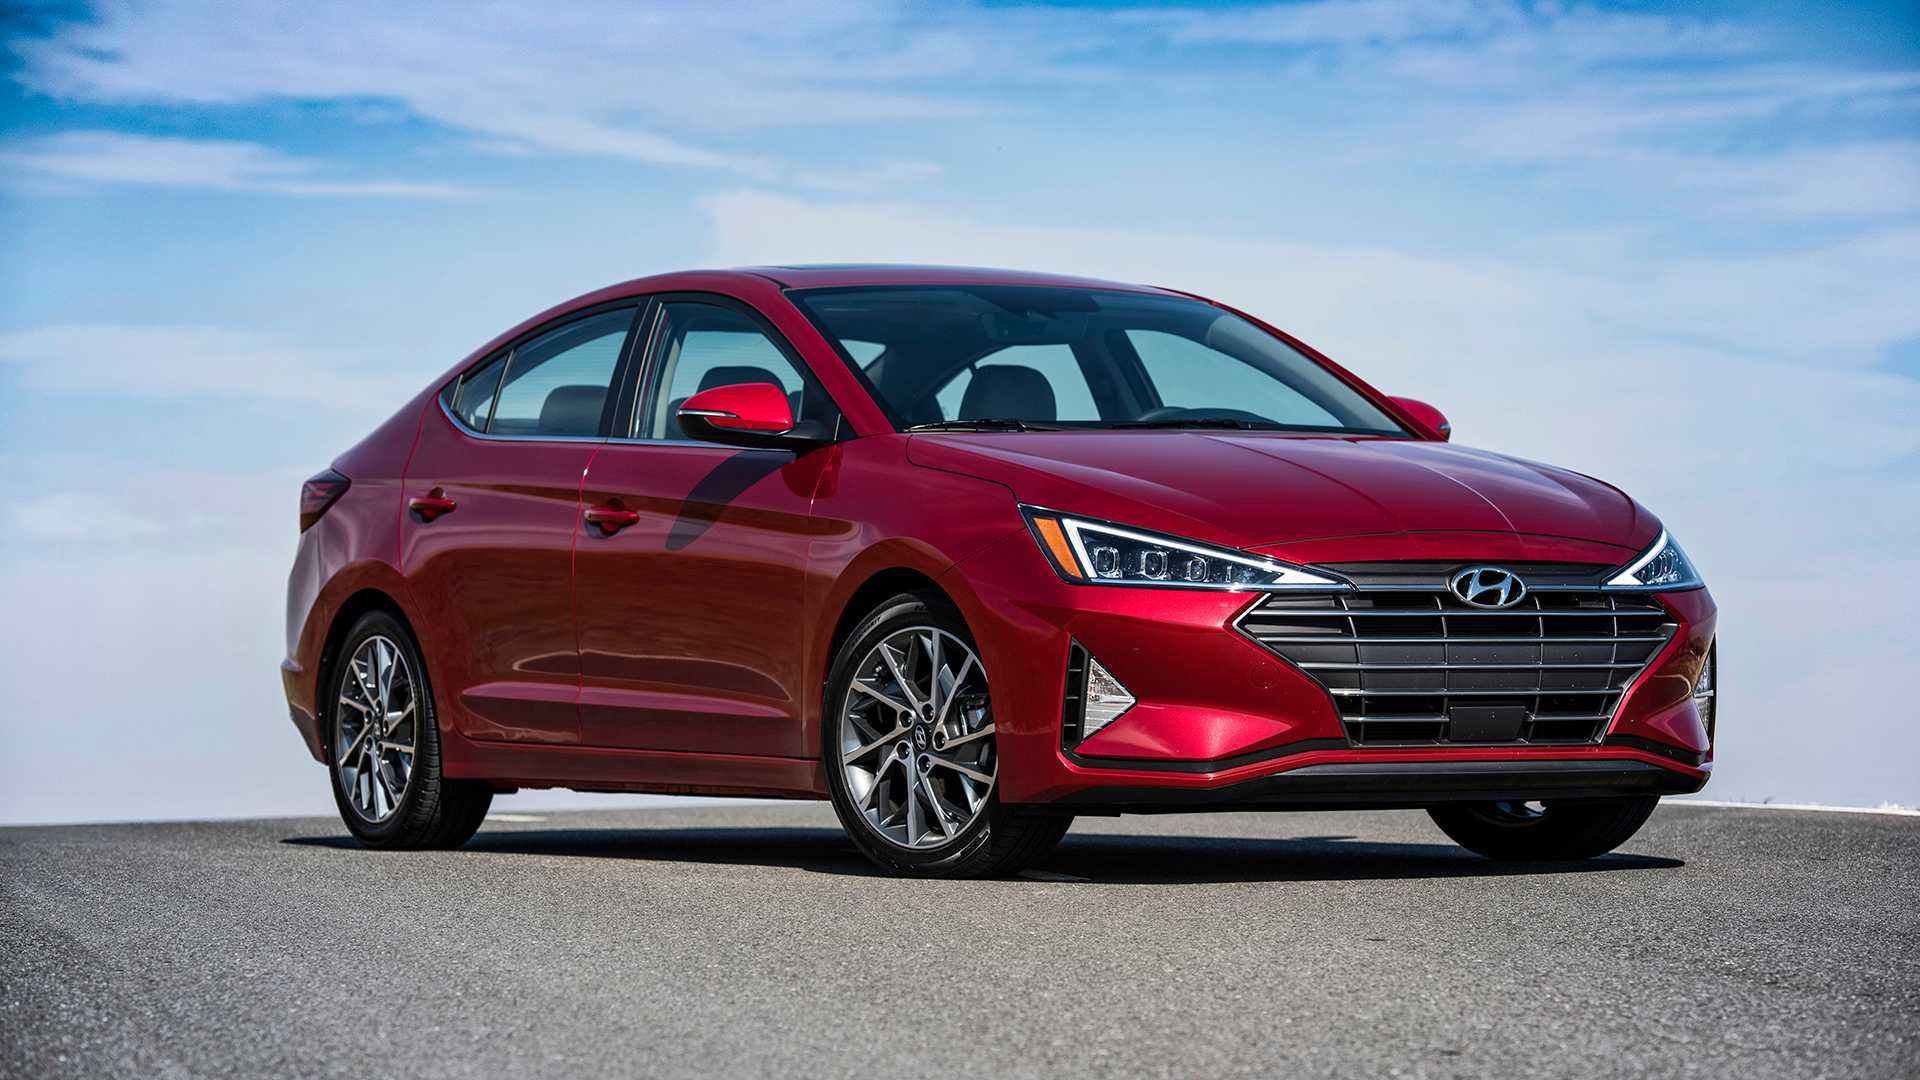 74 The Best 2019 Hyundai Elantra Limited Redesign And Concept